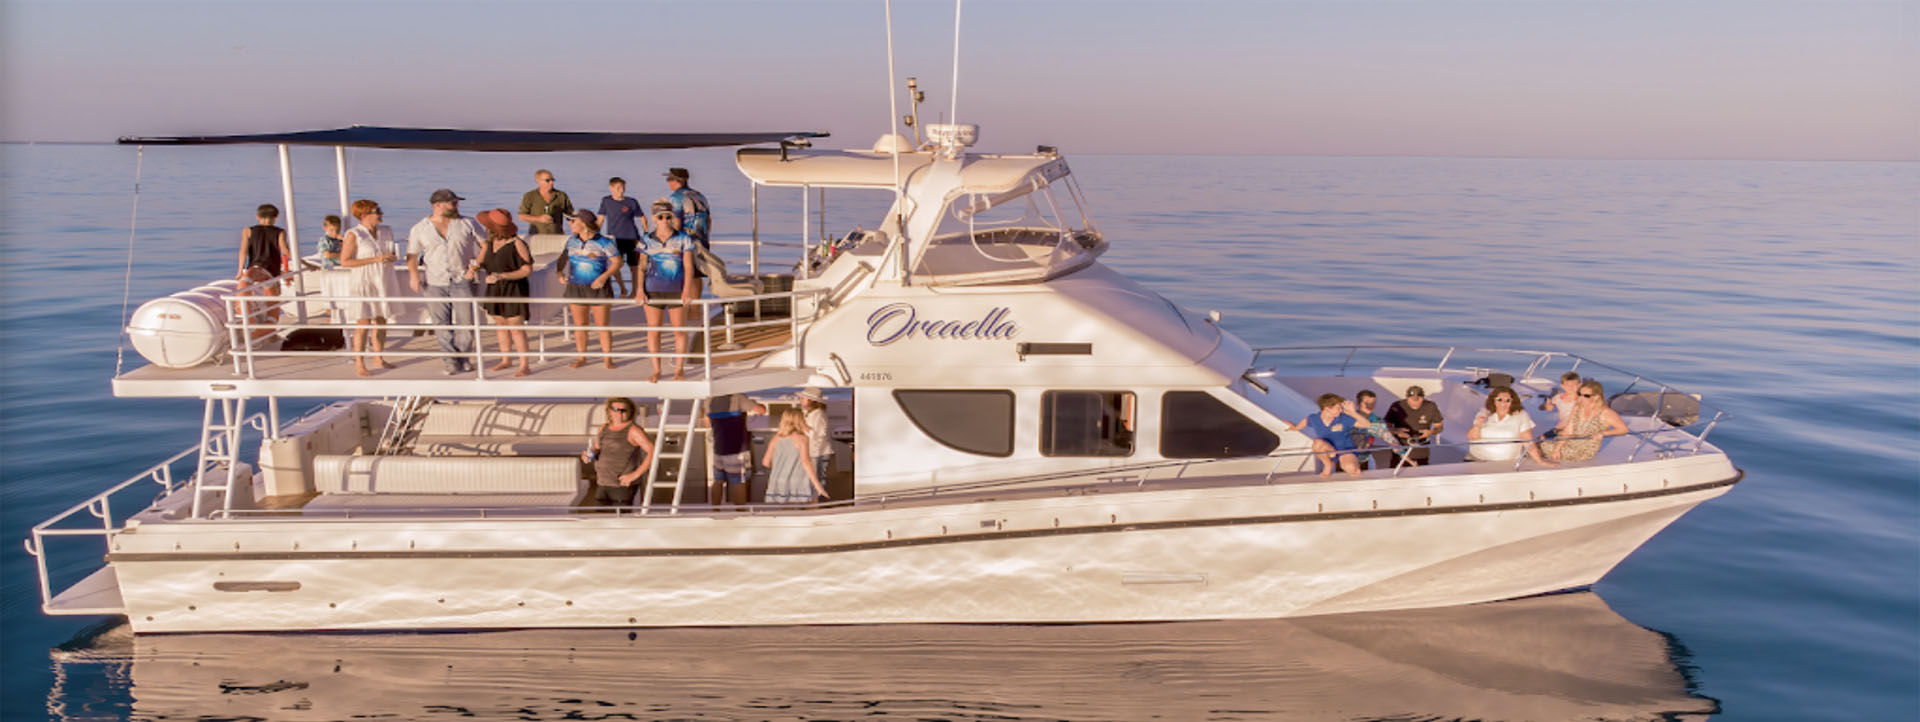 ORCAELLA boat whale watching broome copy